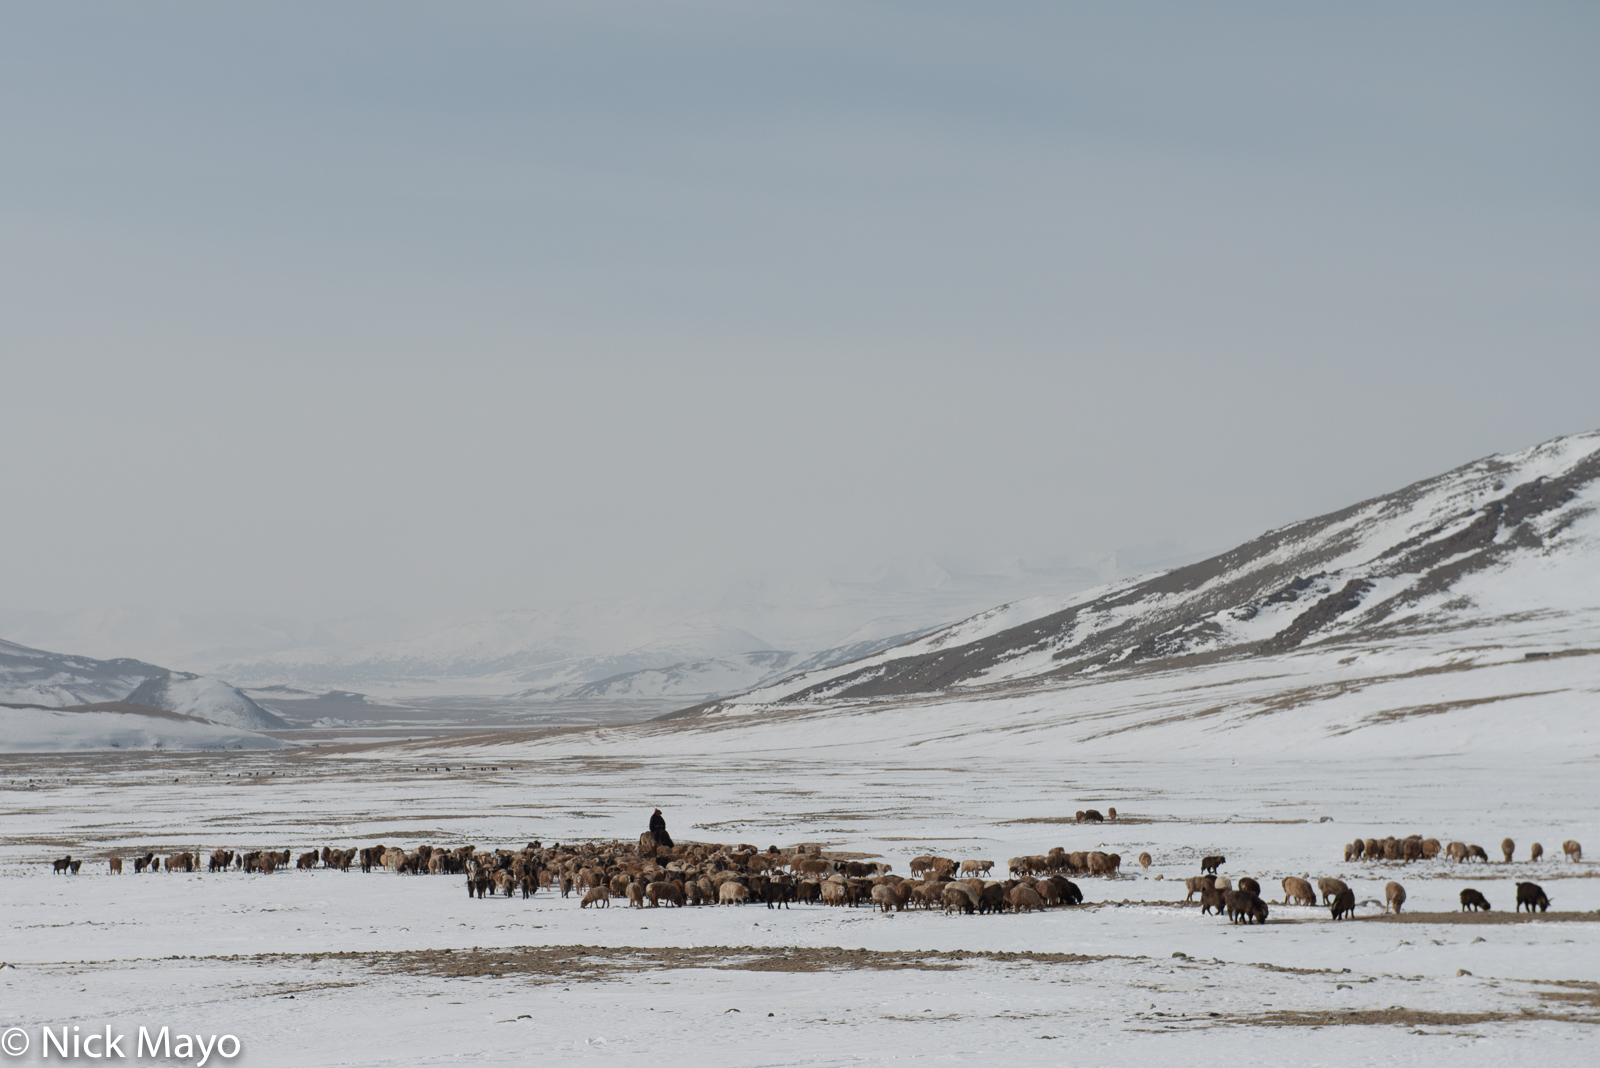 Bayan-Ölgii, Goat, Herding, Horse, Kazakh, Mongolia, Sheep, photo